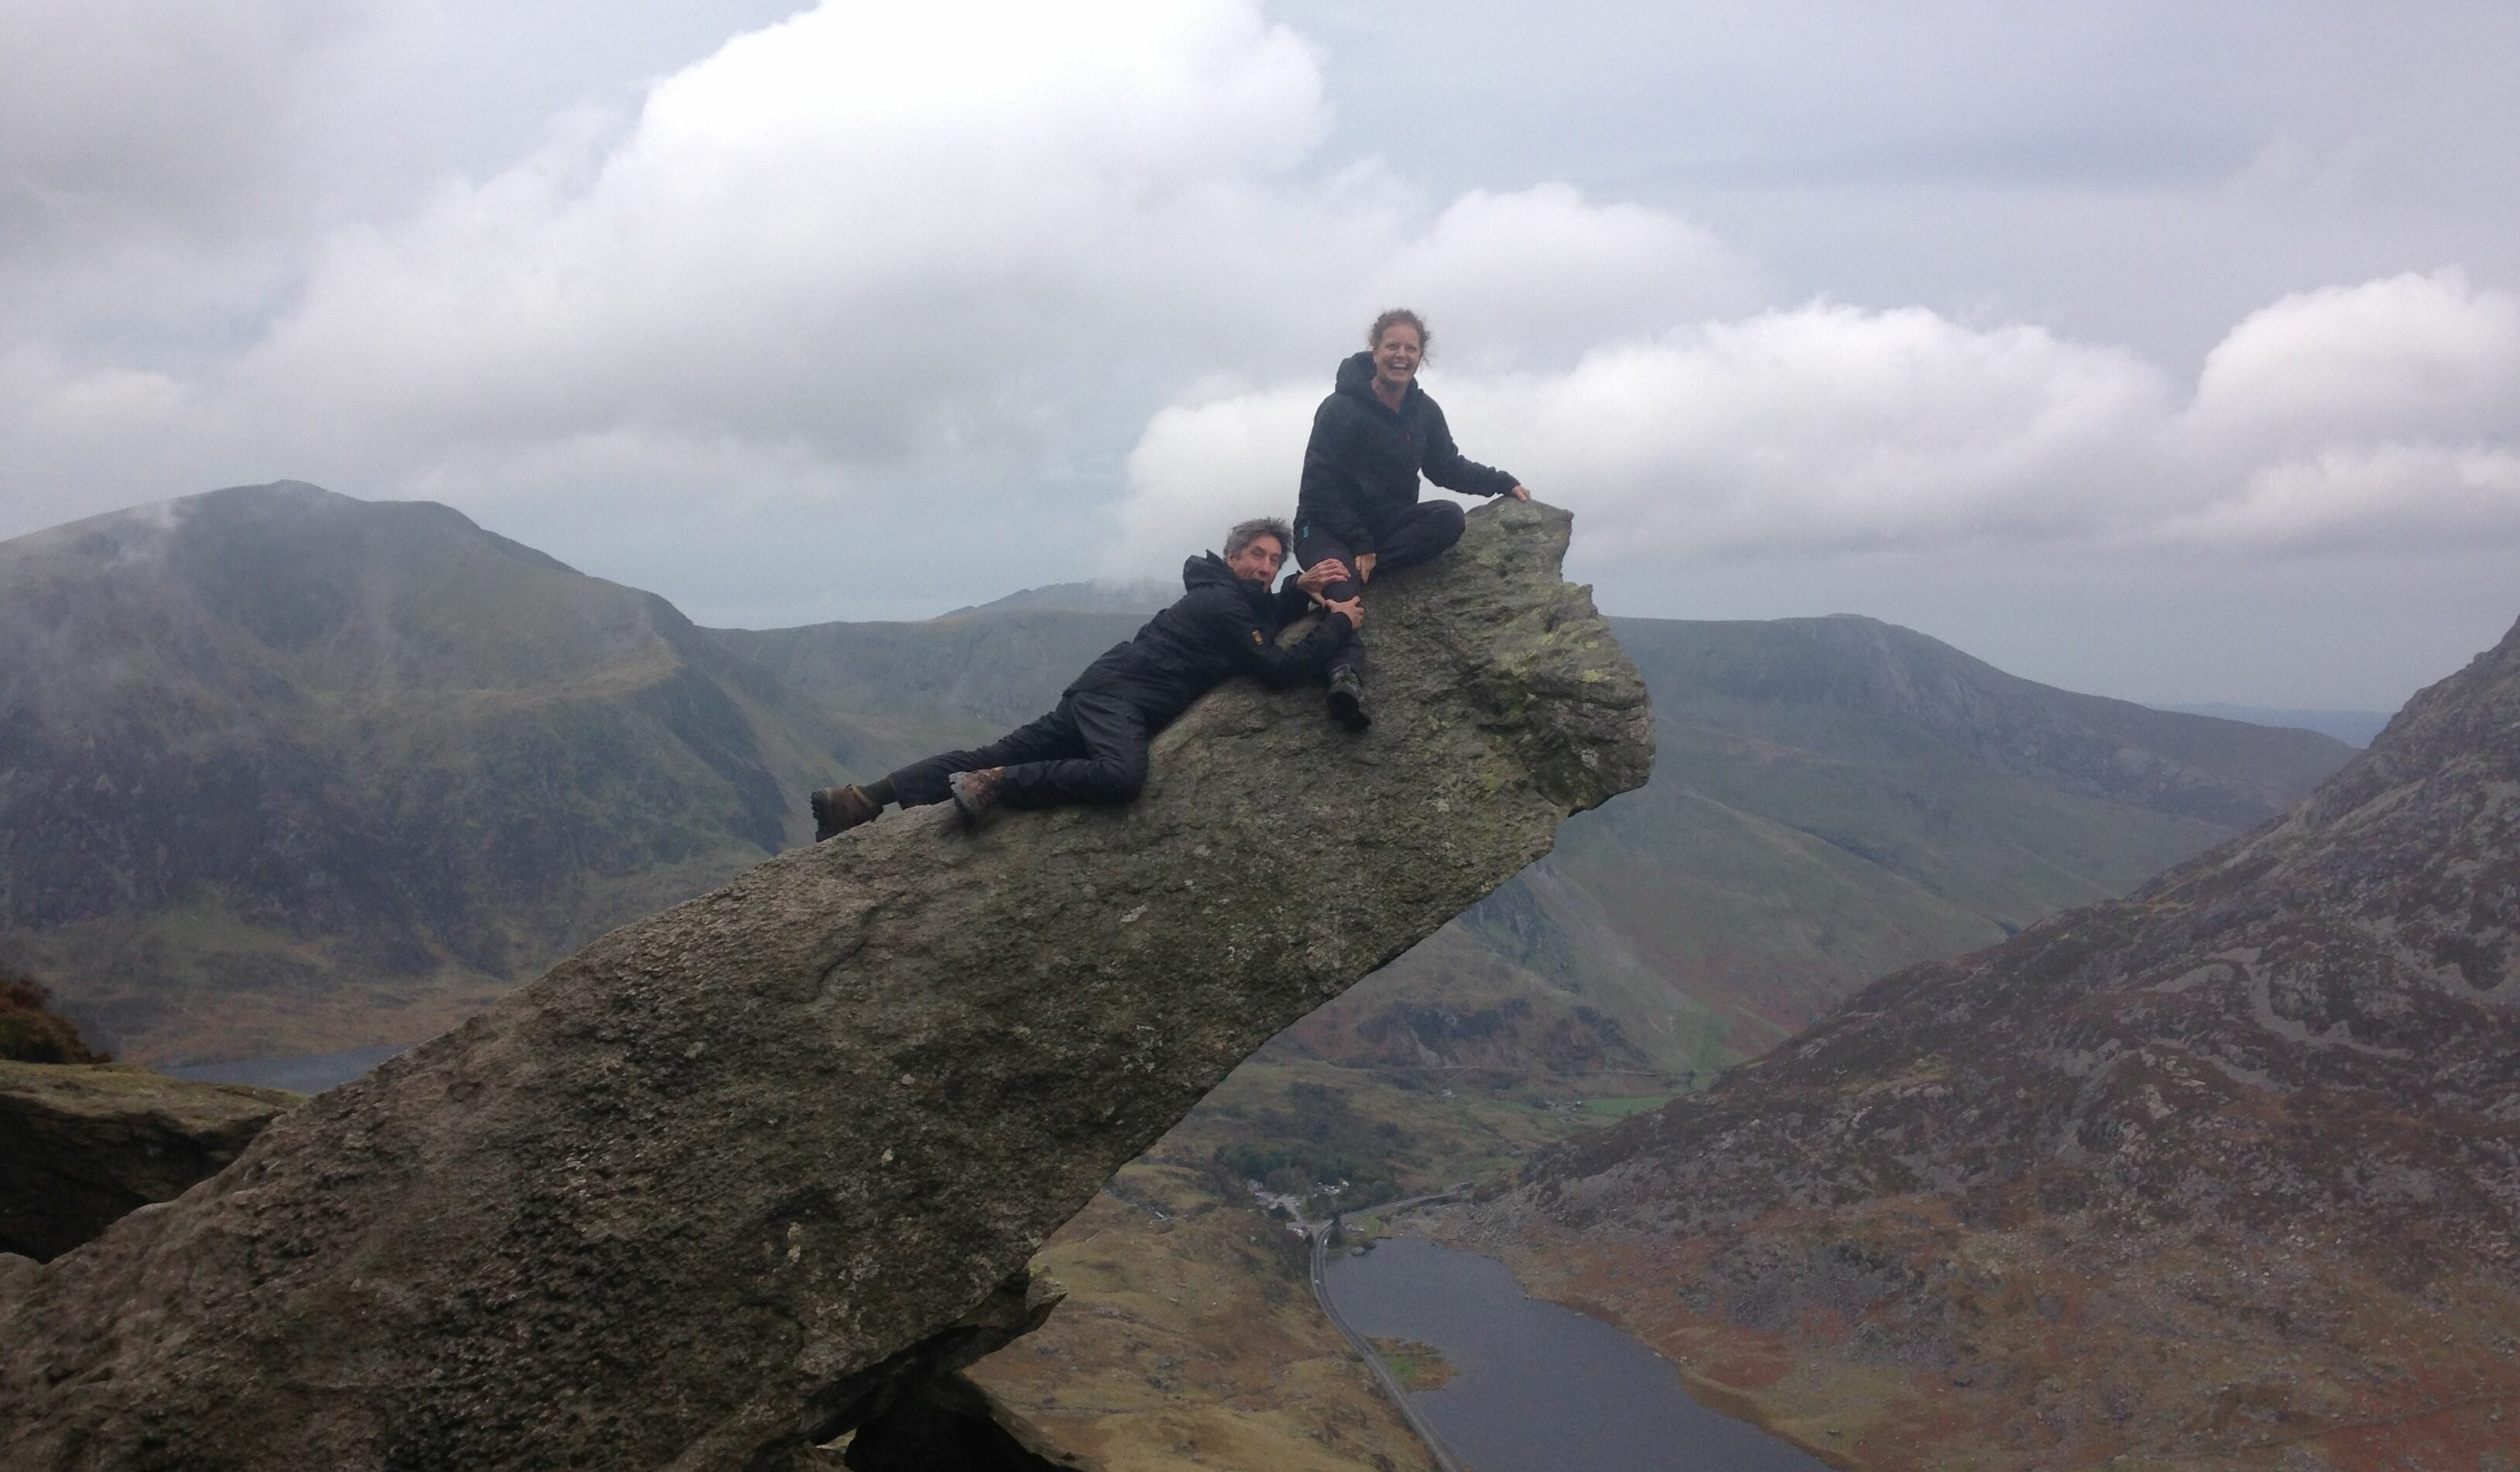 Carol and Neil on the Canon, Snowdonia